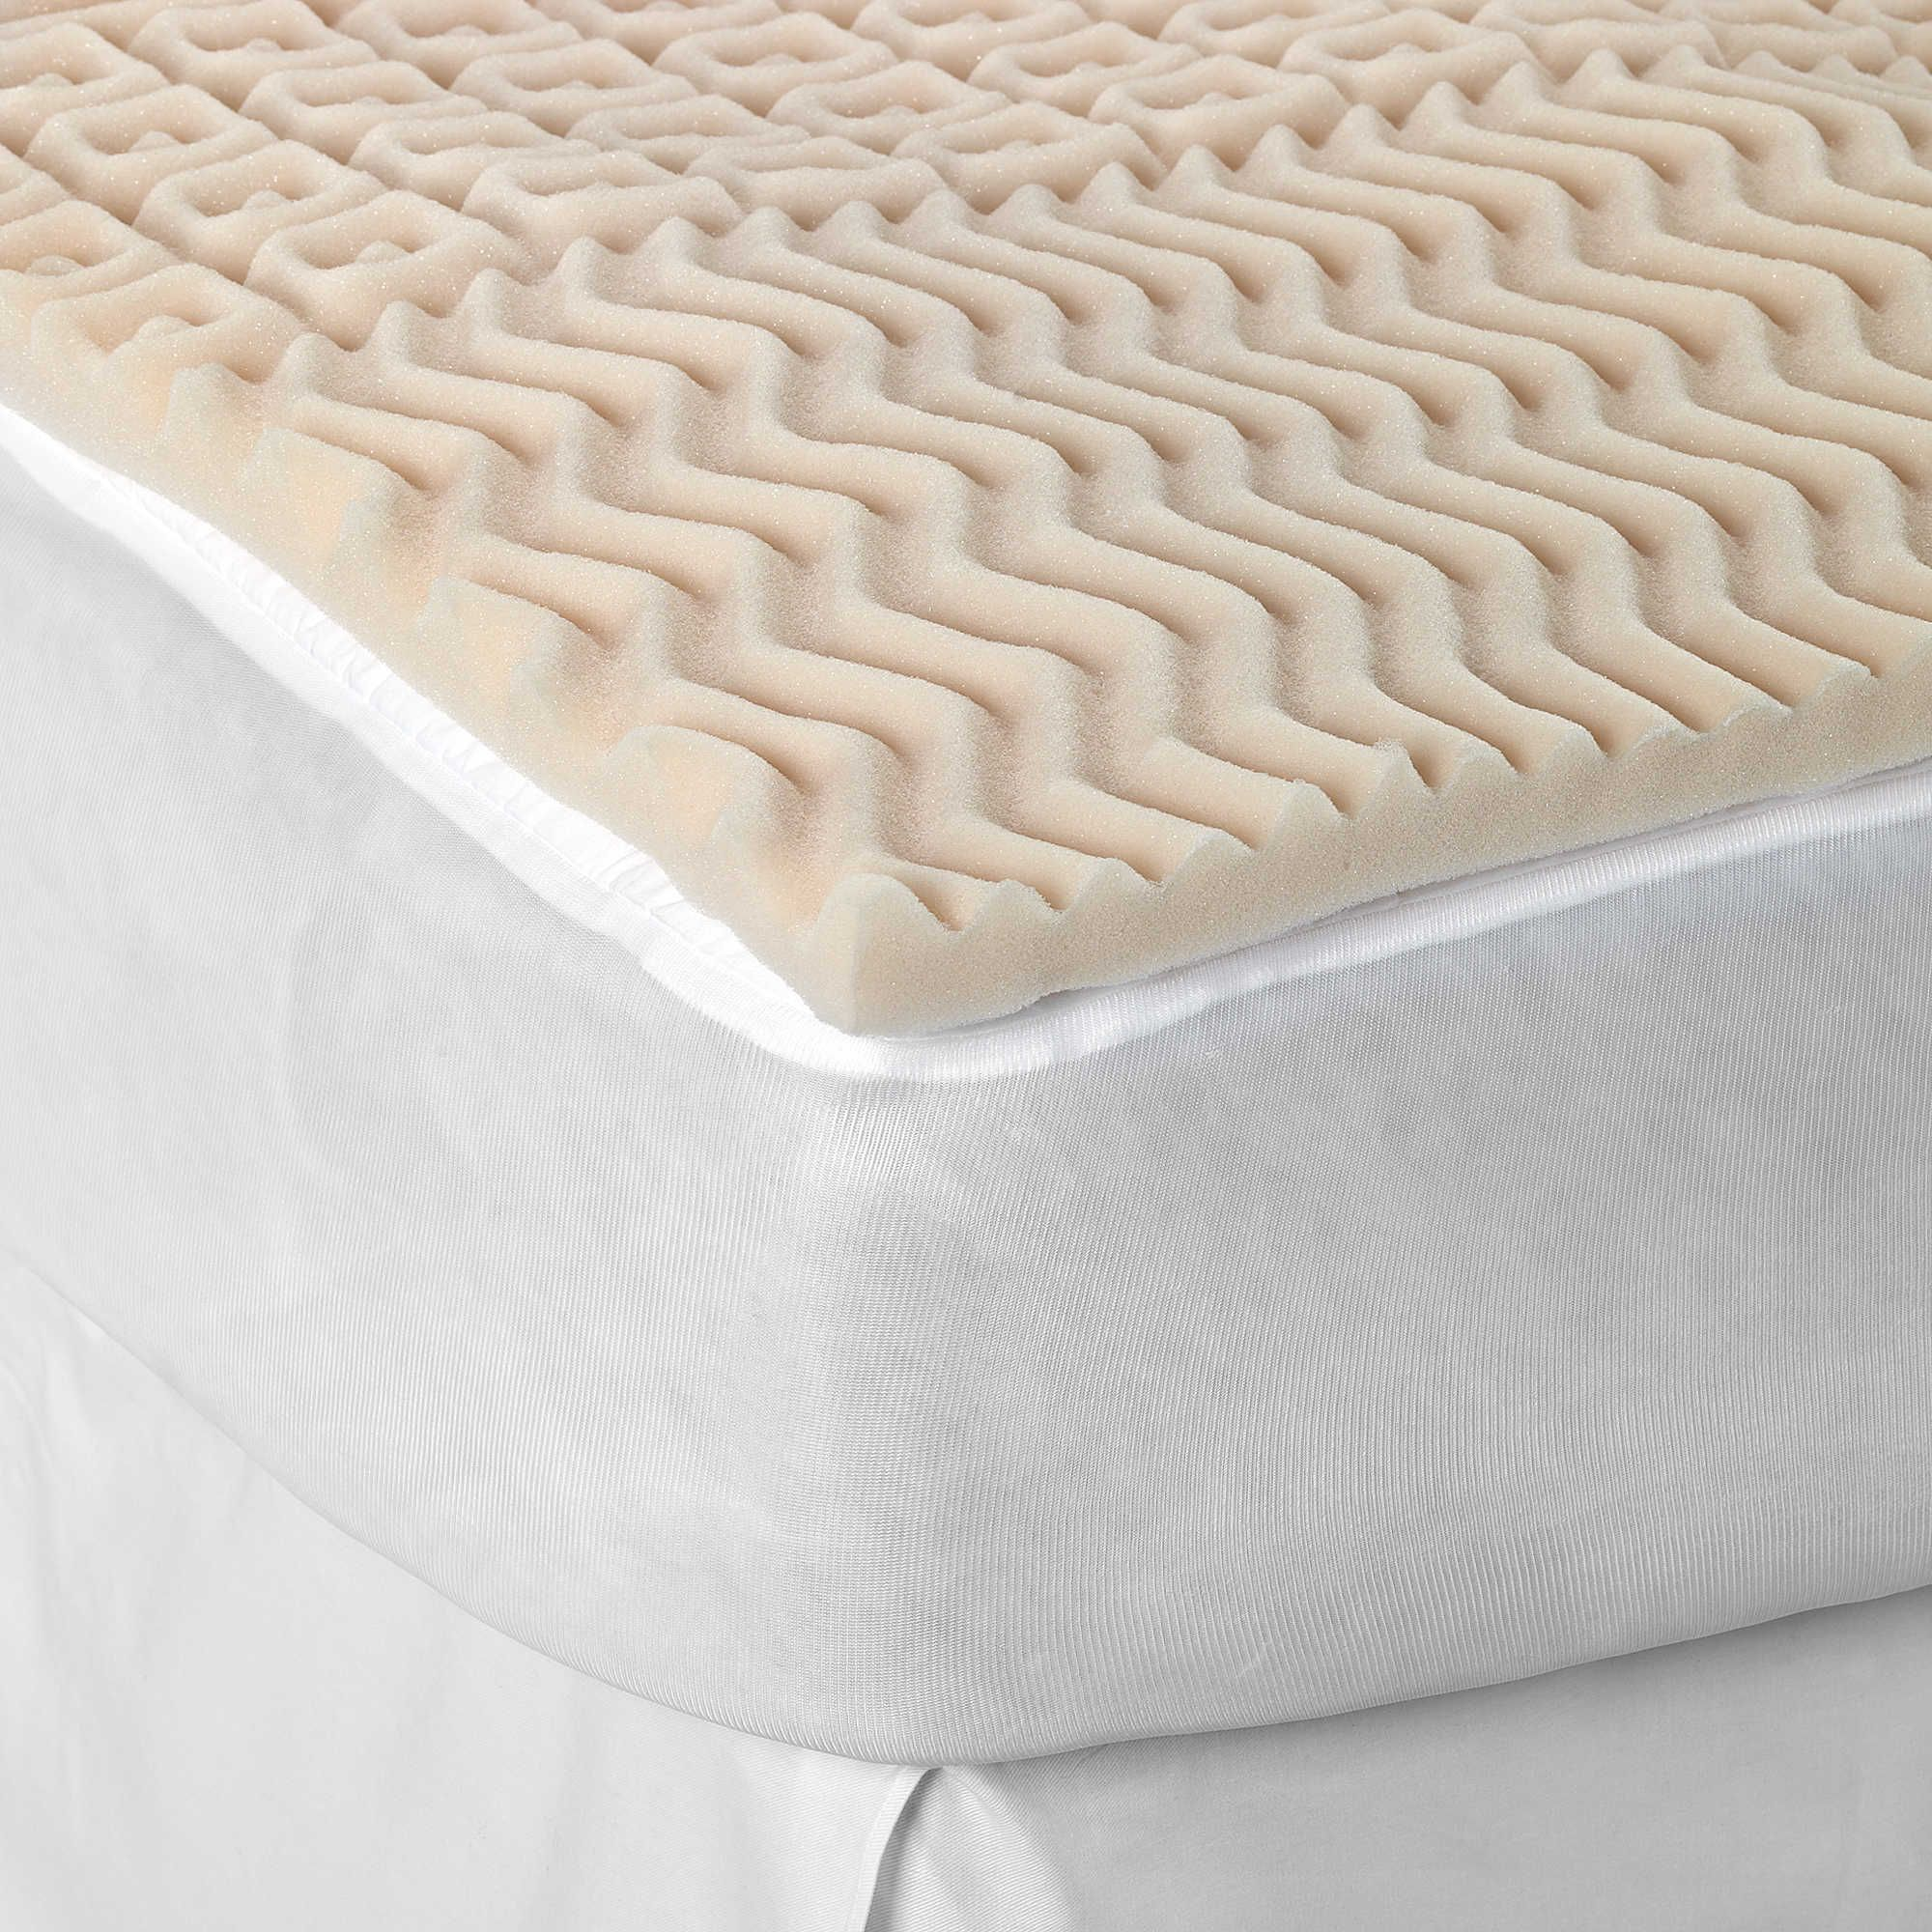 Sleep Zone 5 Zone Egg Crate Foam Mattress Topper Projects To Try